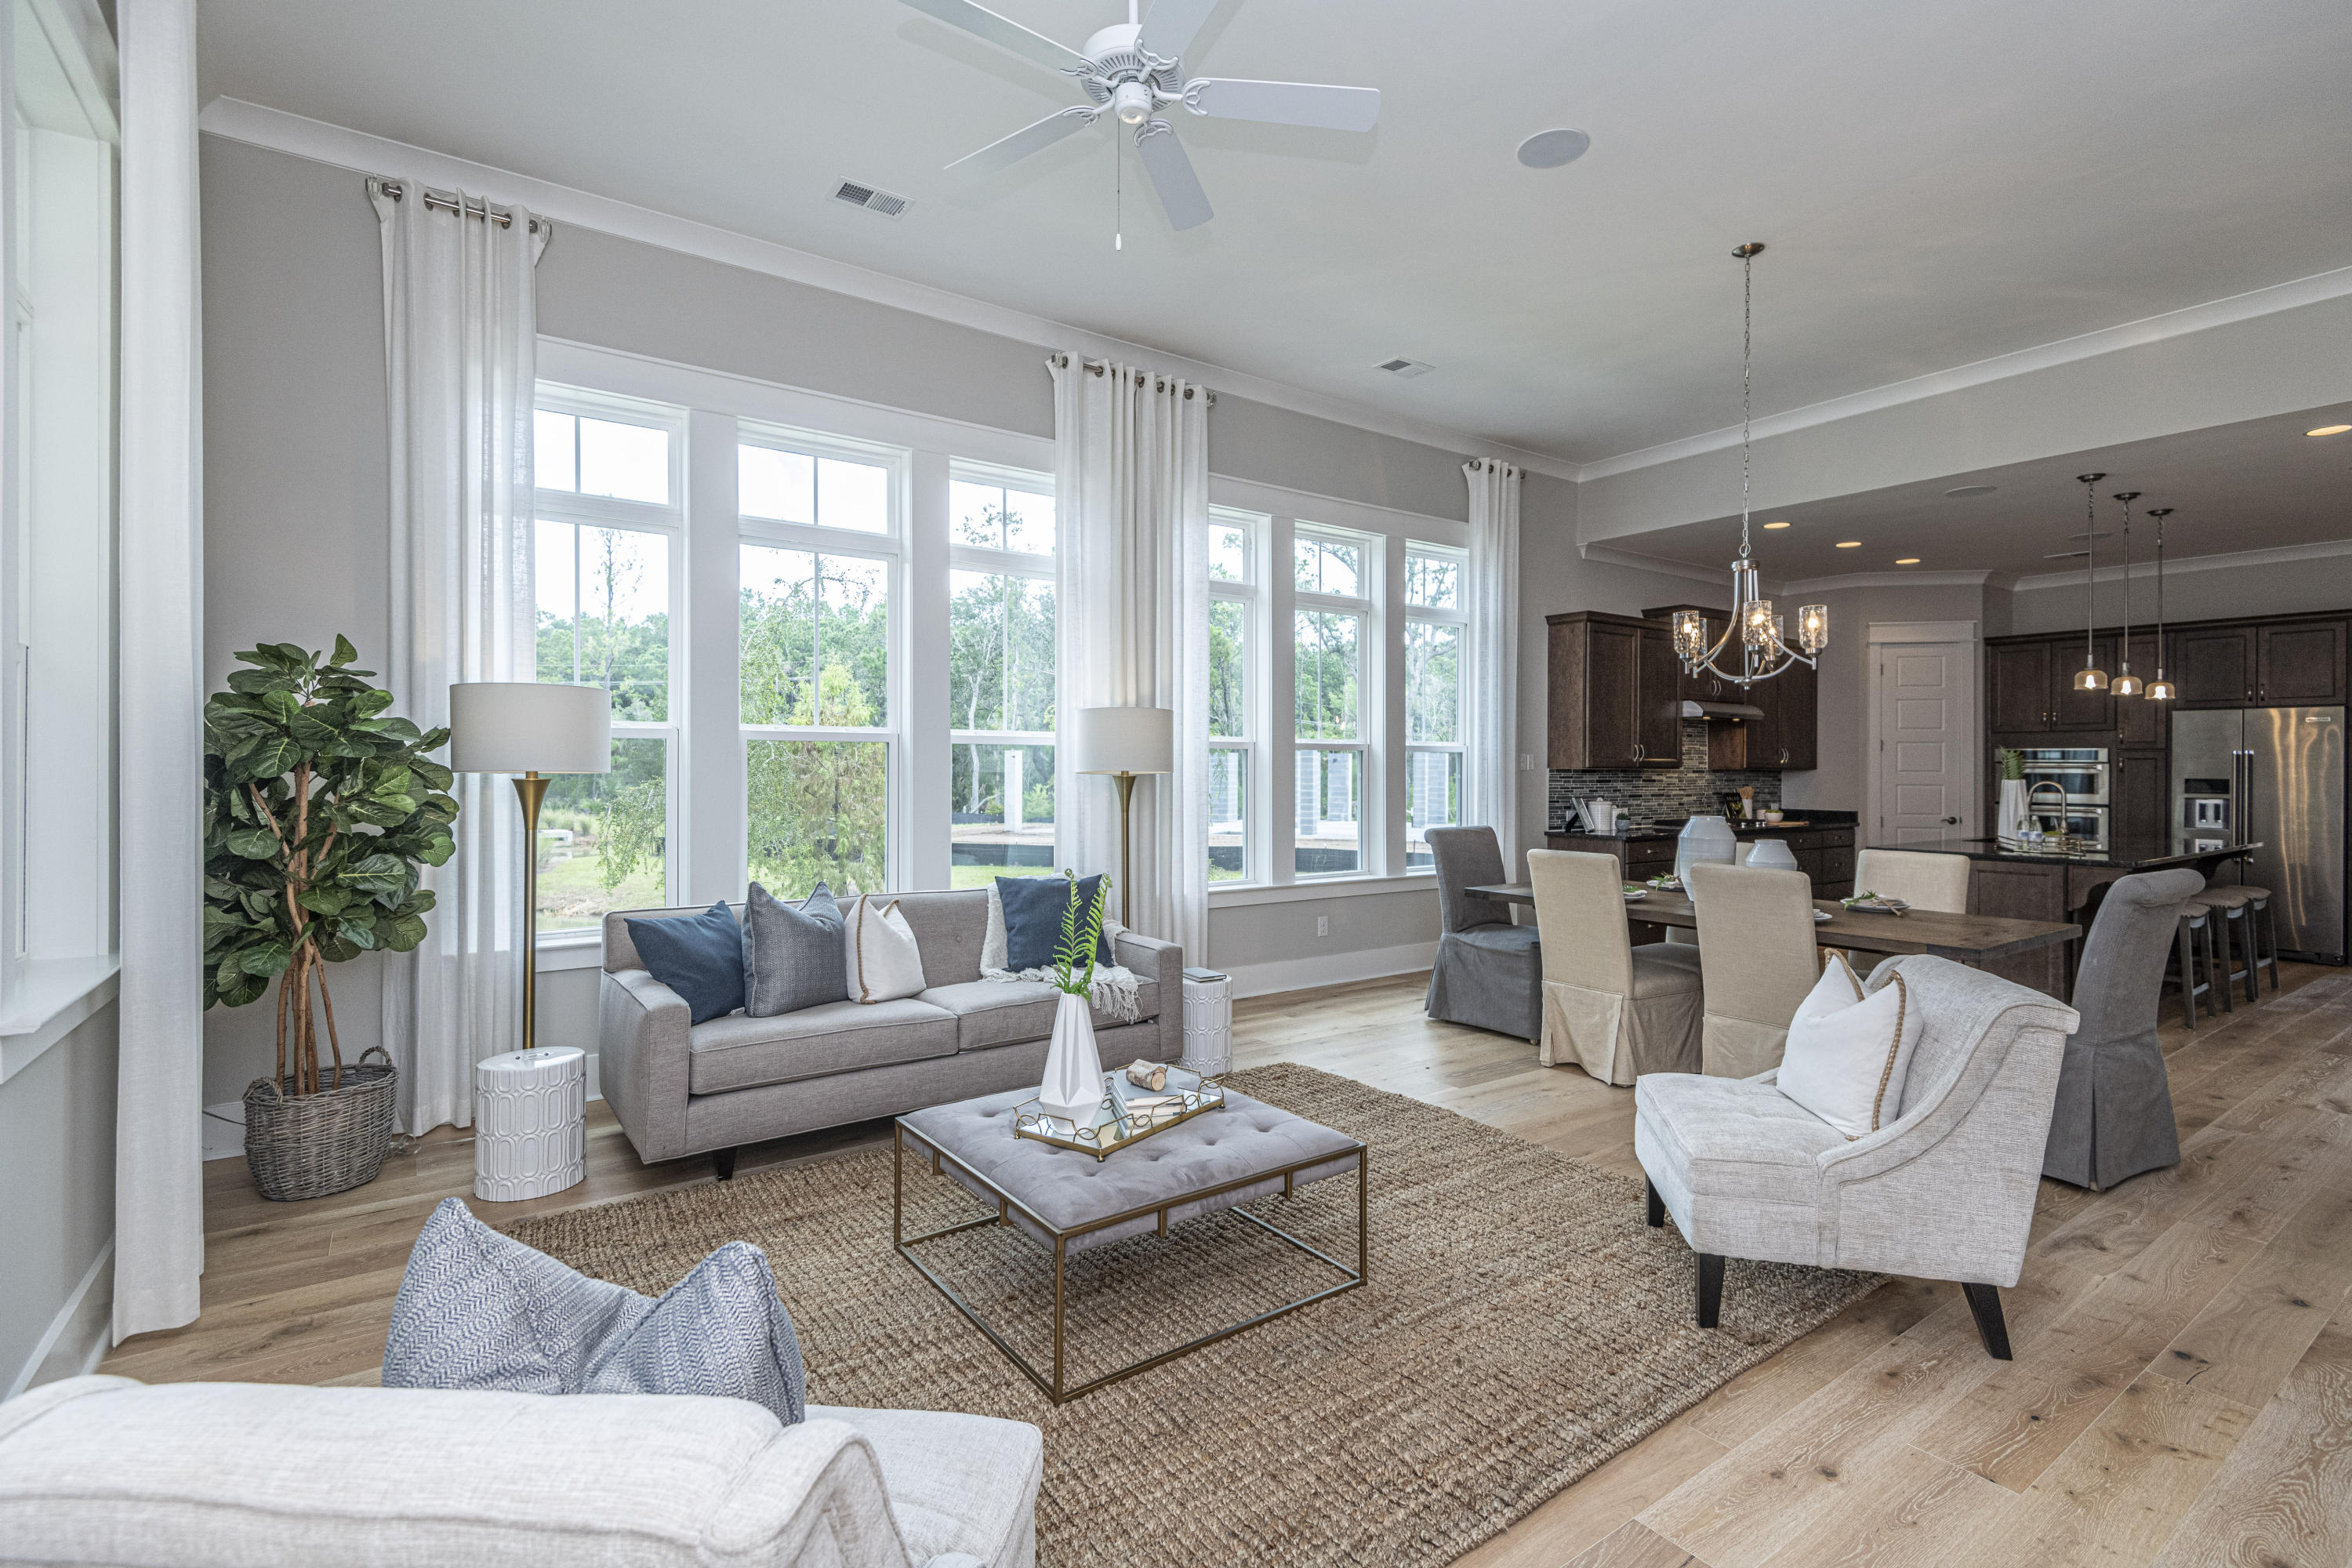 Dunes West Homes For Sale - 2854 Dragonfly Circle, Mount Pleasant, SC - 7